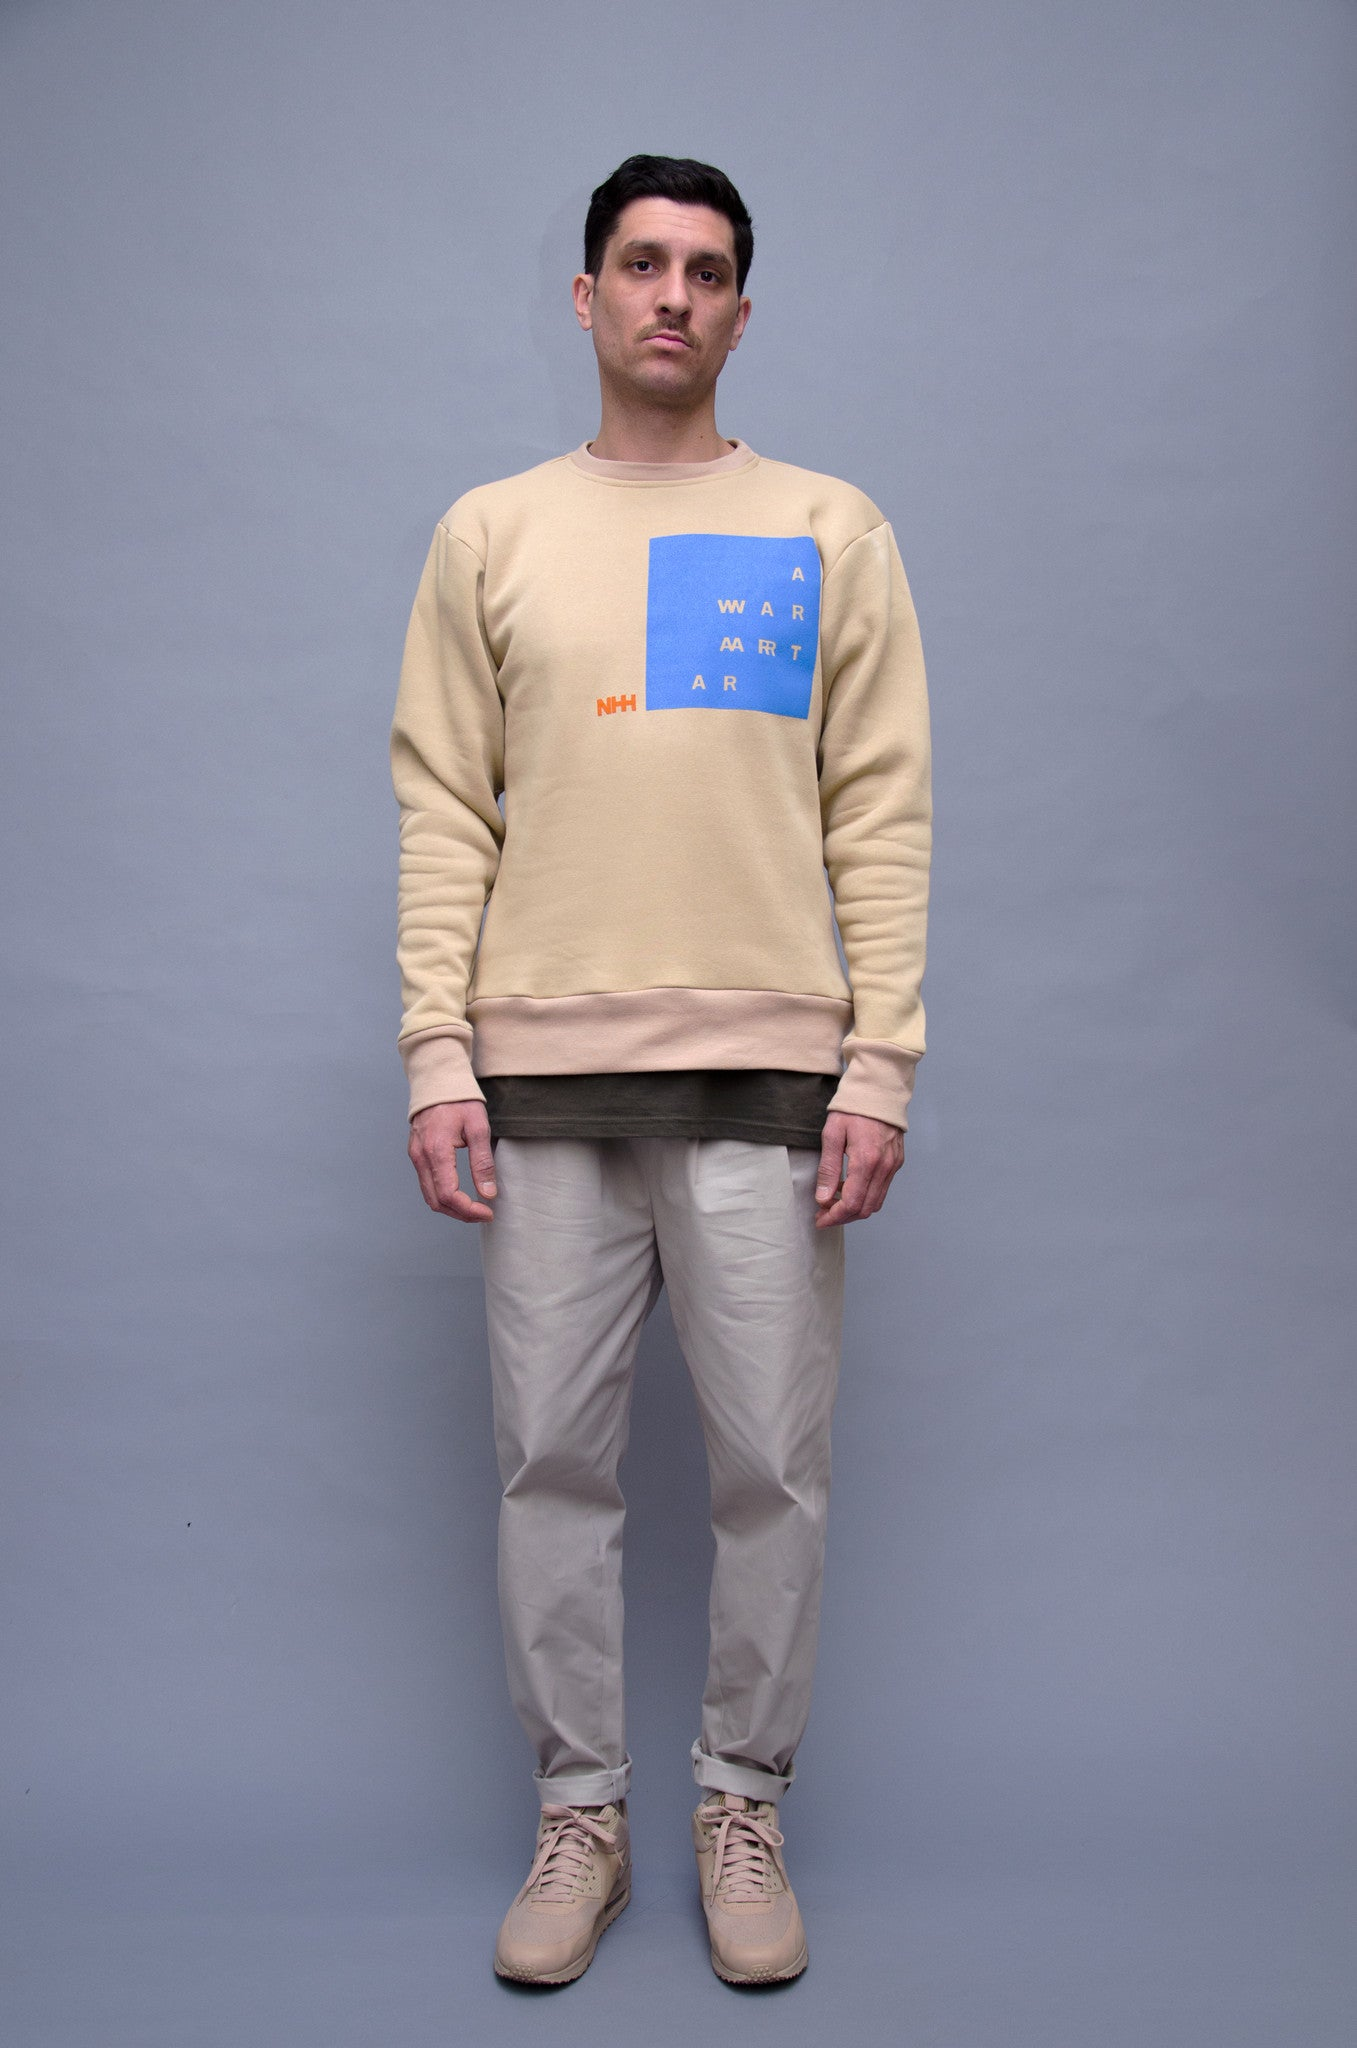 The North Hill Two-tone Warrior Crewneck is a made in France sweatshirt